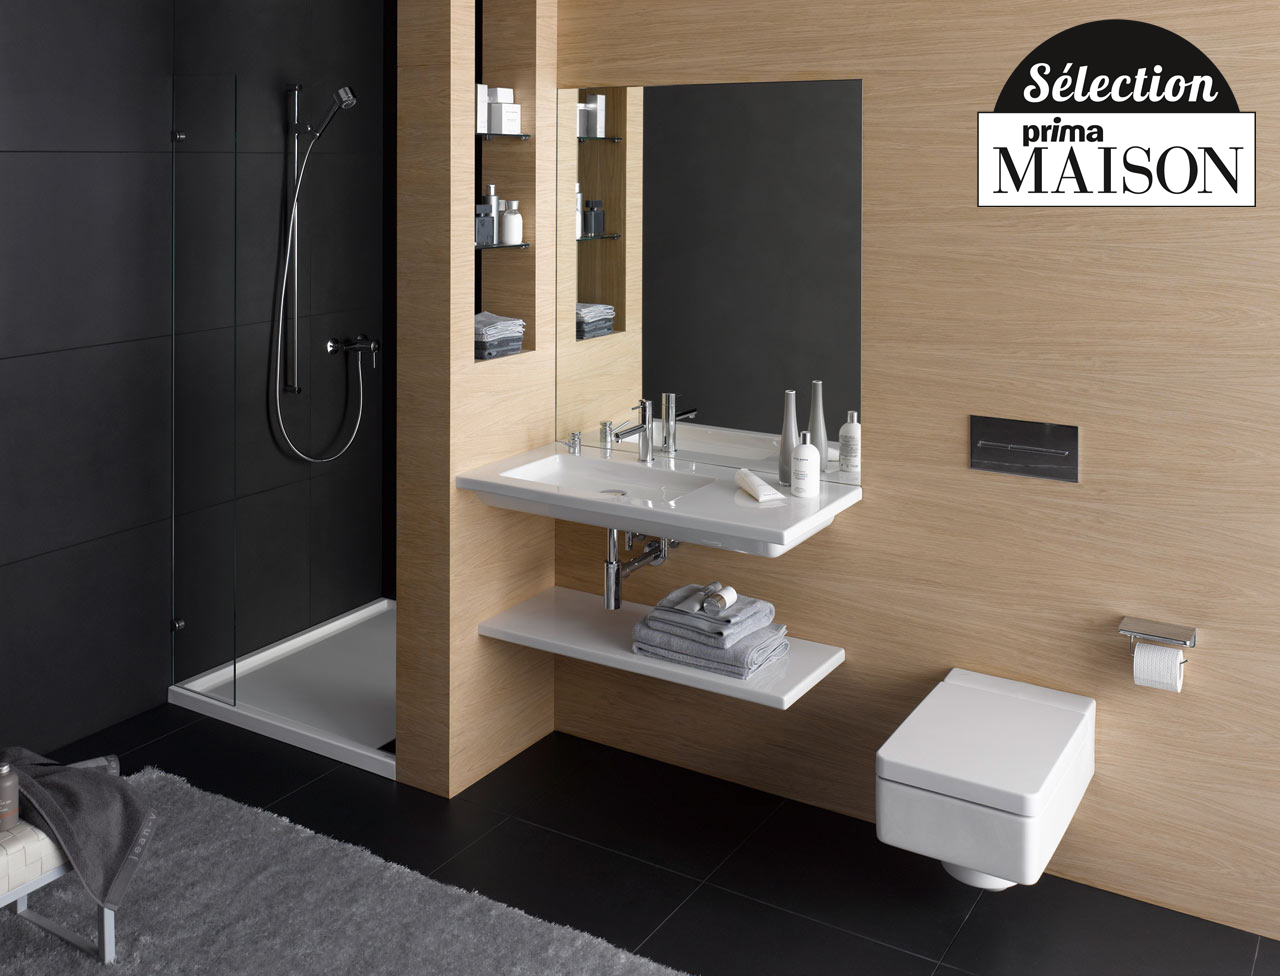 D coration salle de bain 2016 exemples d 39 am nagements Decoration salle de bain design